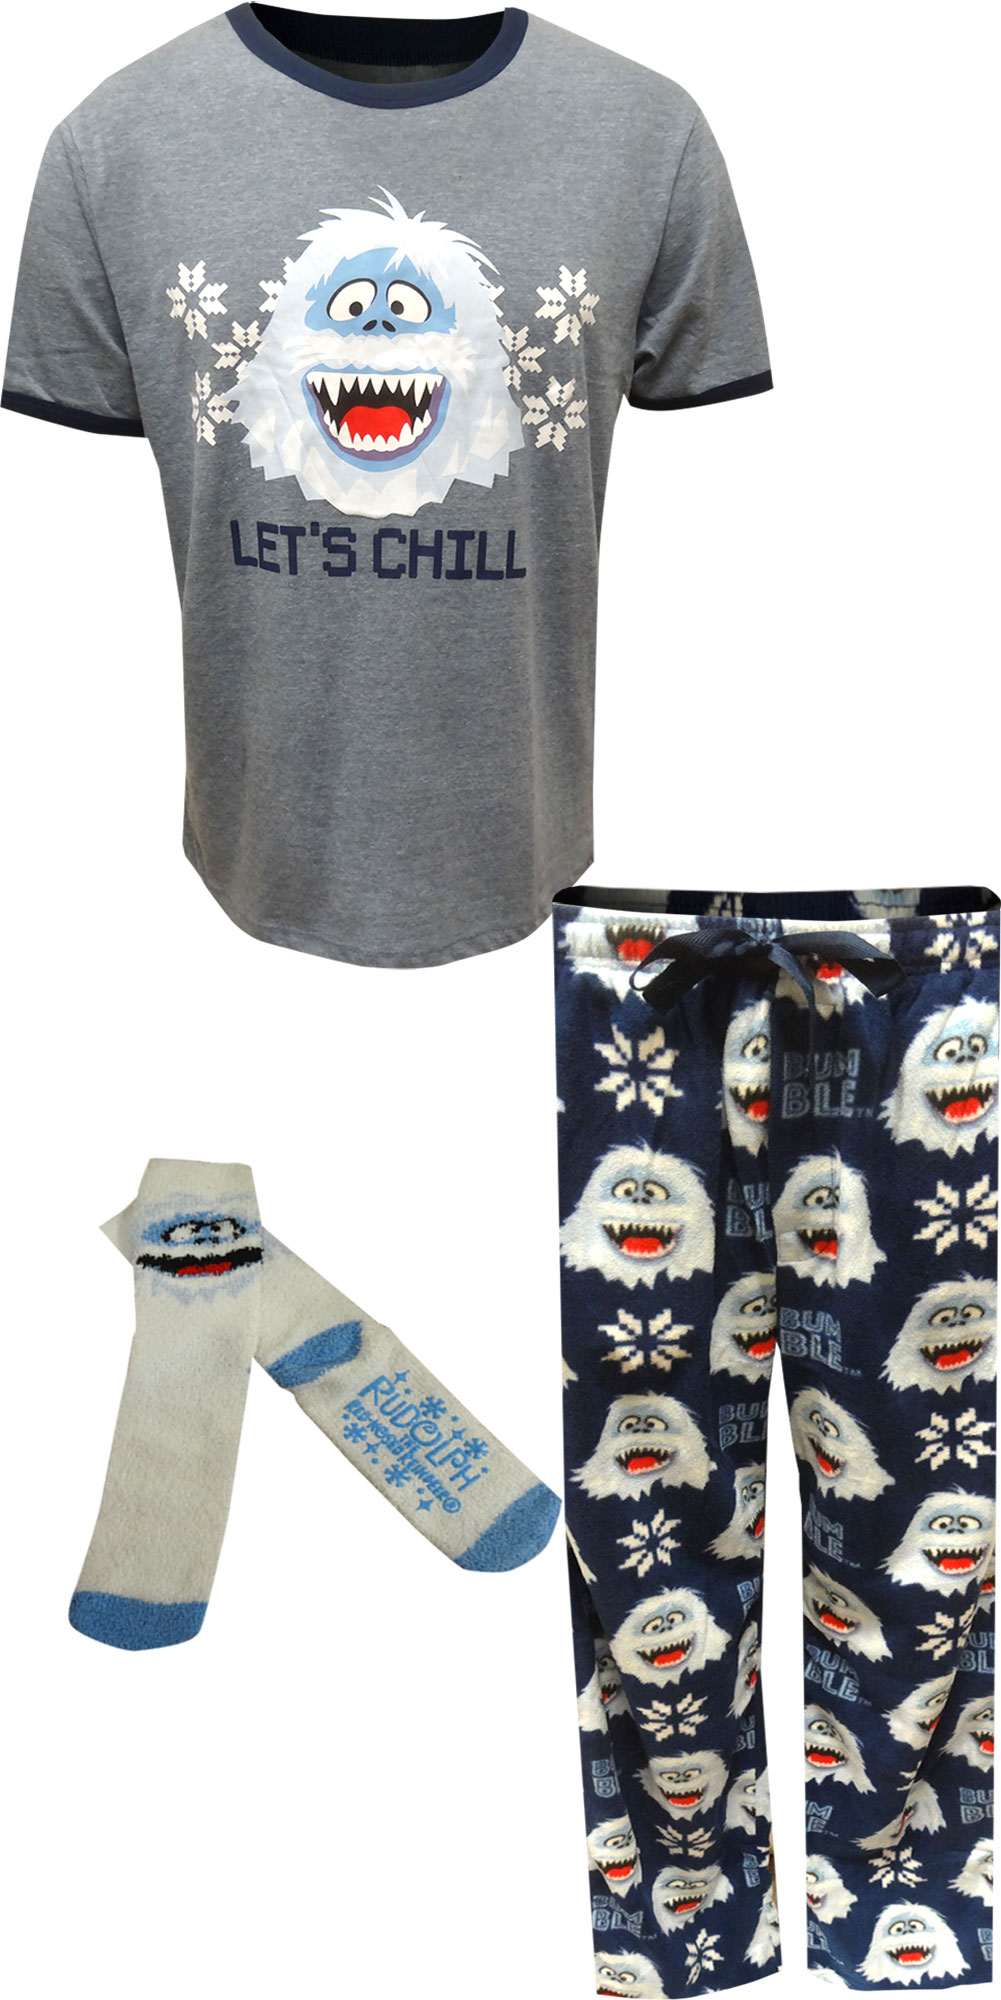 Image of Christmas Rudolph The Red Nosed Reindeer Bumble Pajamas for Men